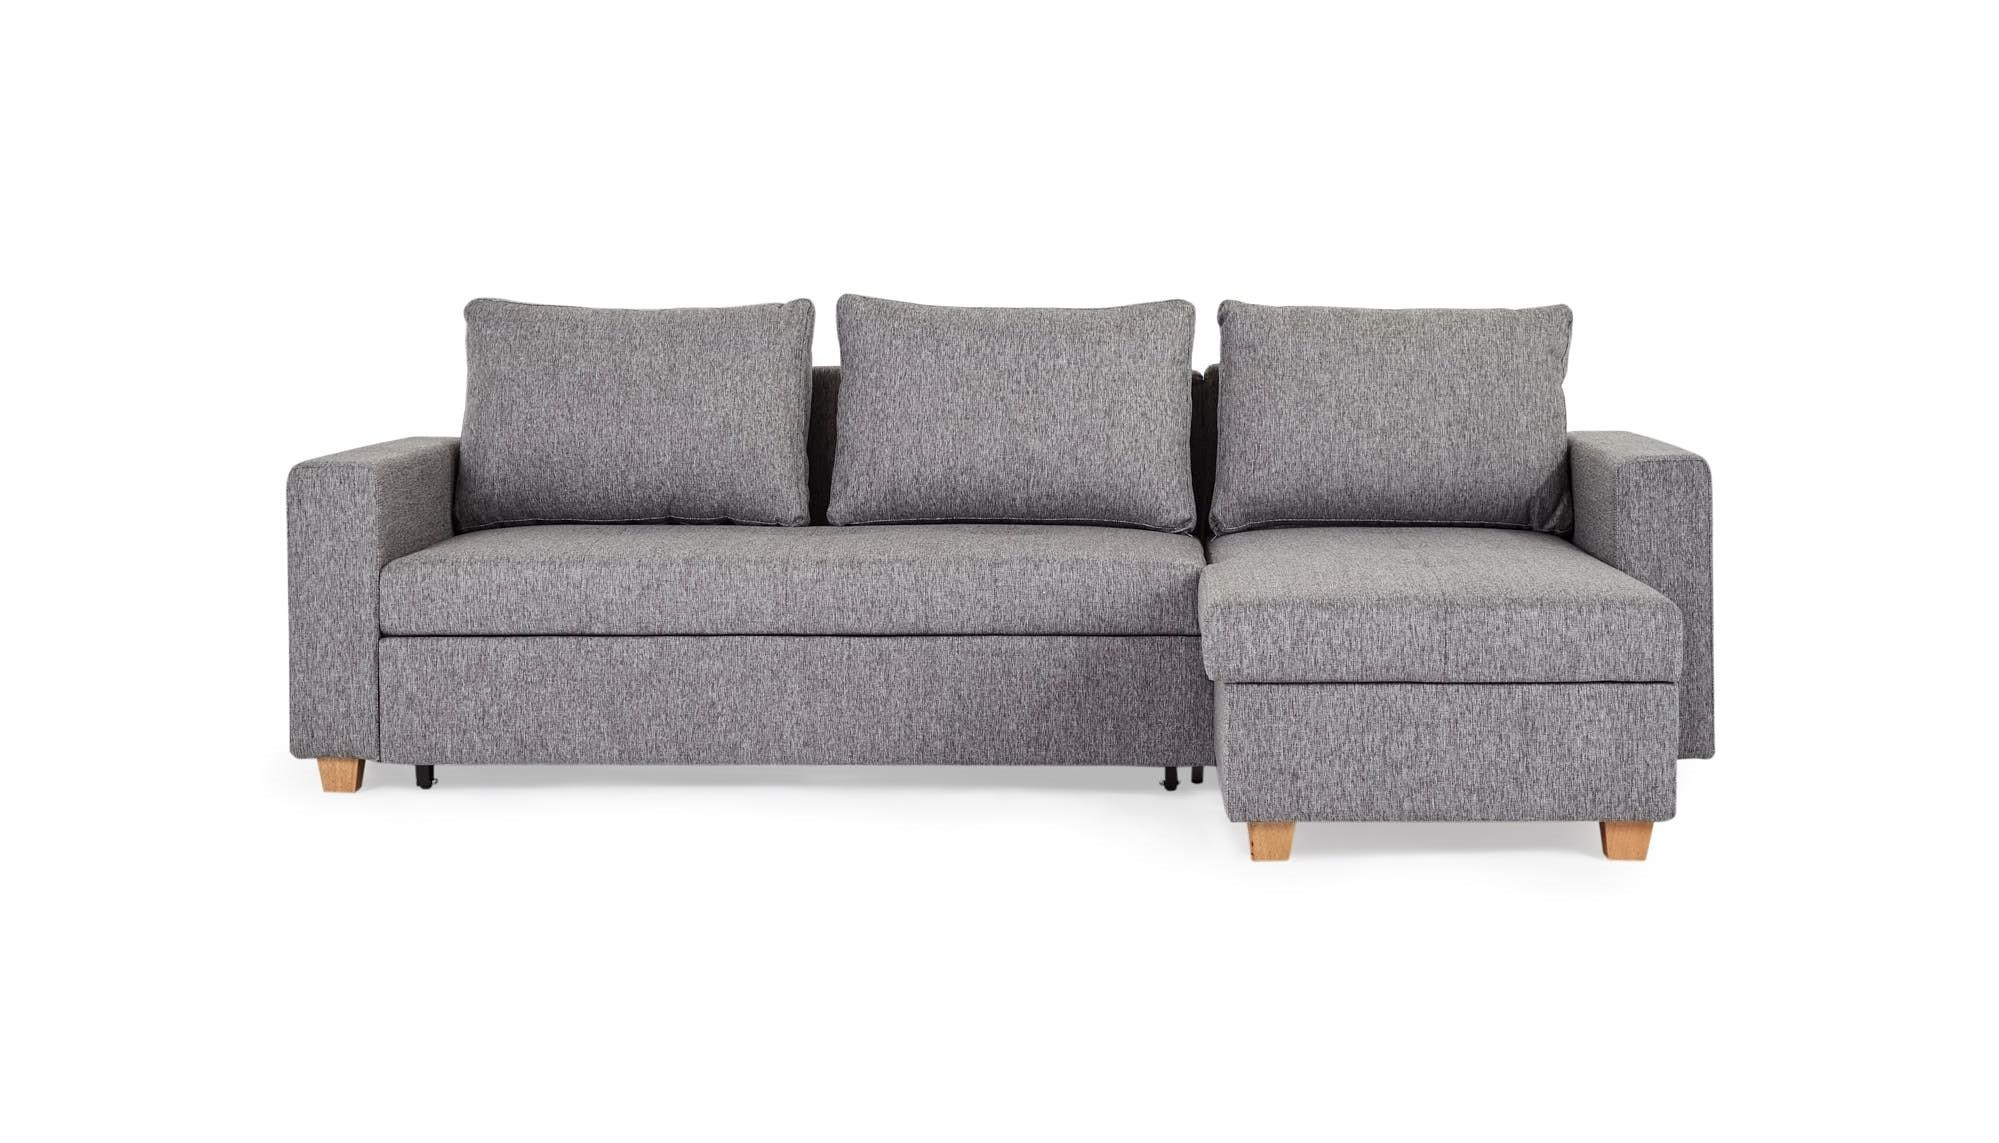 Chicago Storage – Corner Sofa Bed | Loungelovers Regarding Chaise Longue Sofa Beds (View 17 of 20)